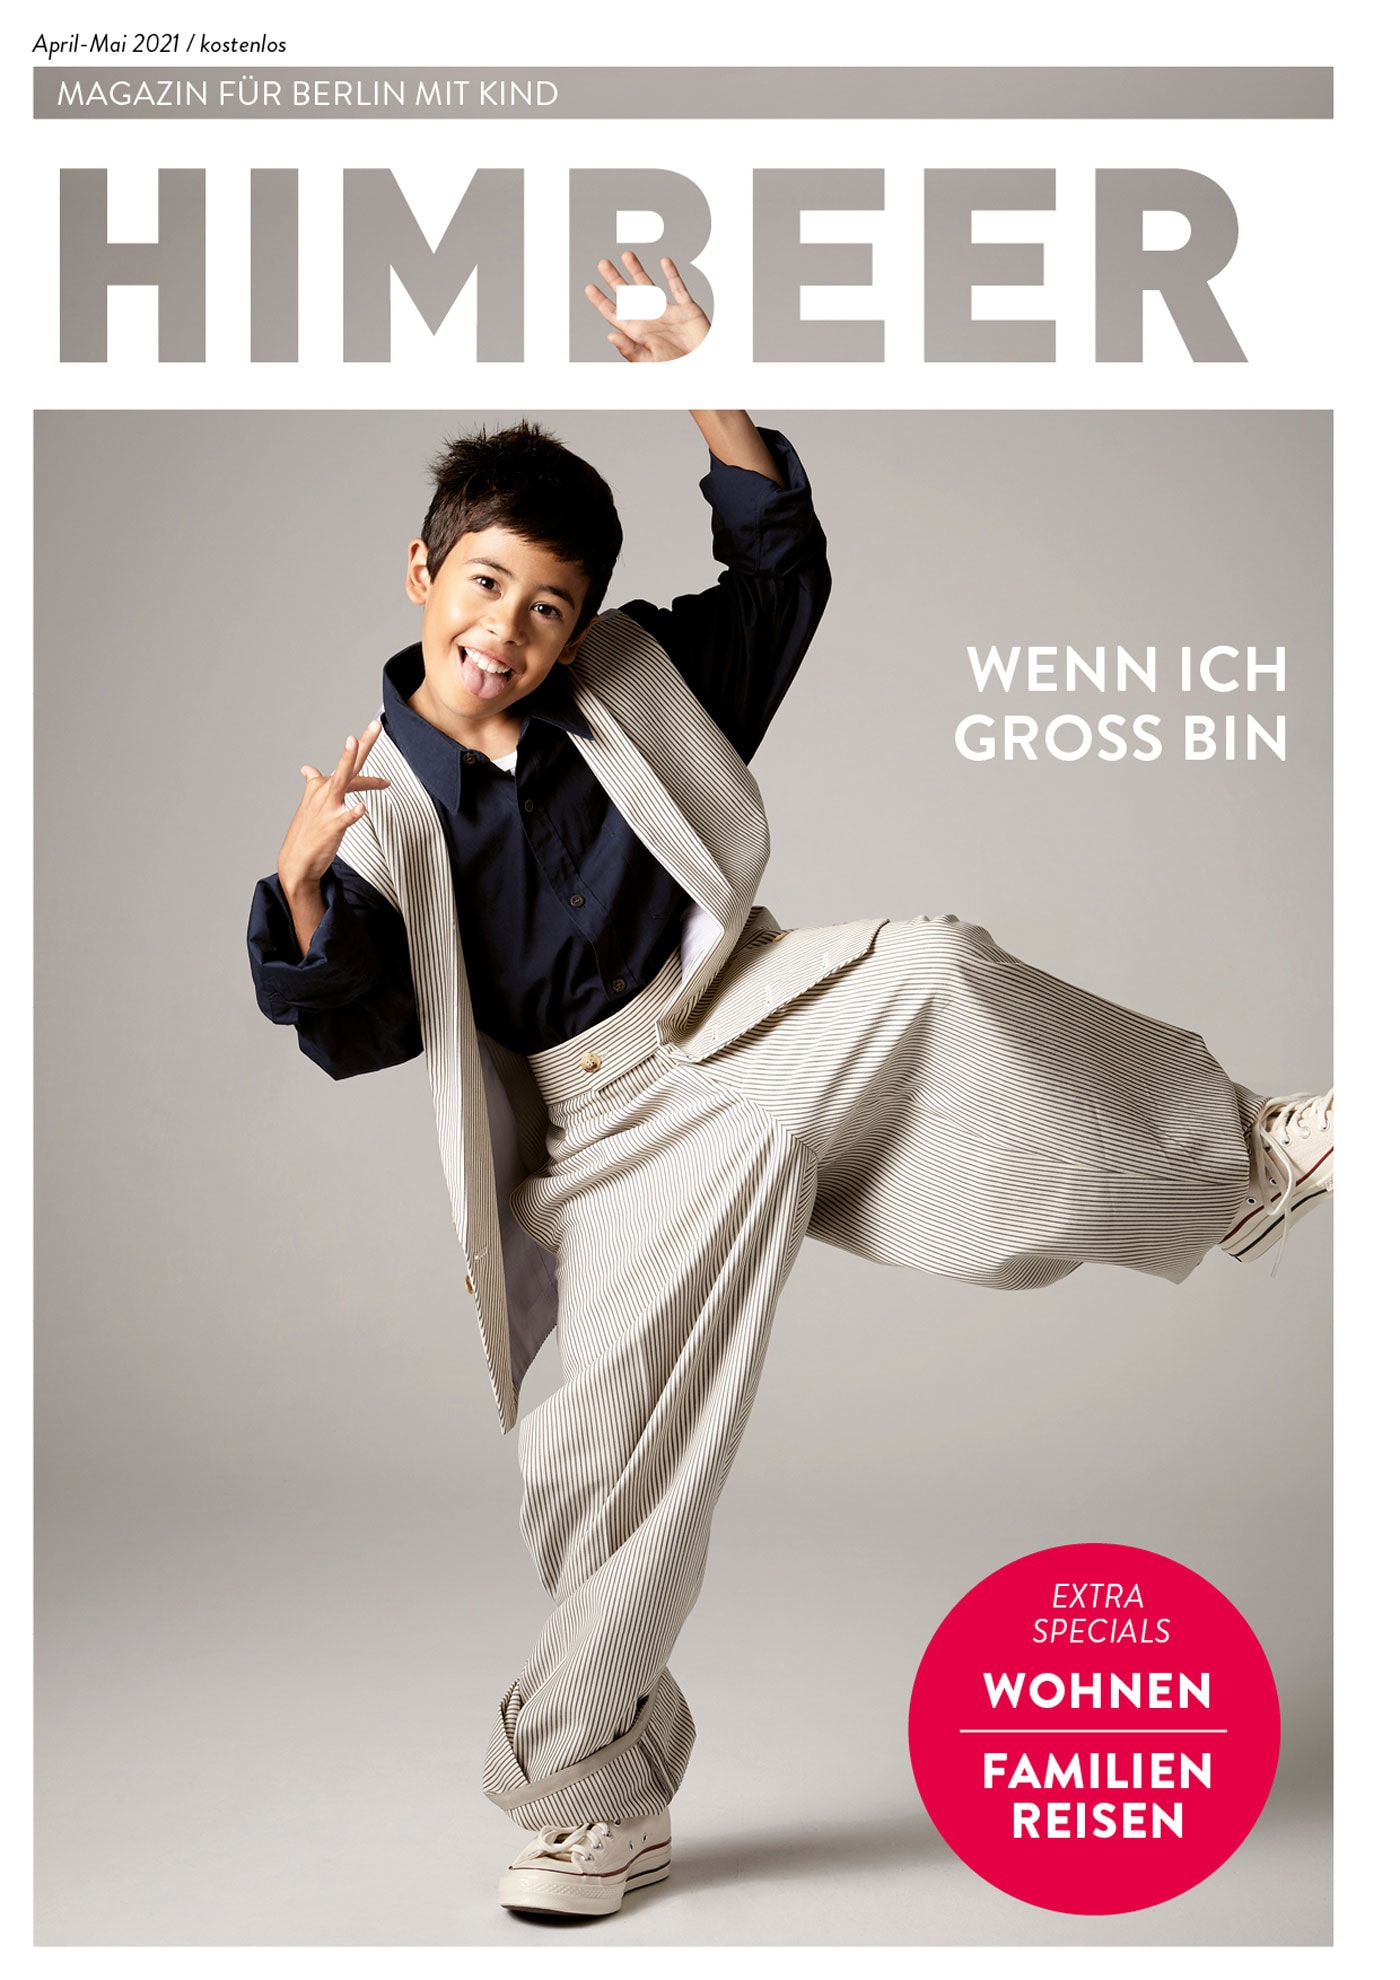 HIMBEER Magazin für Berlin mit Kind April-Mai 2021 // HIMBEER